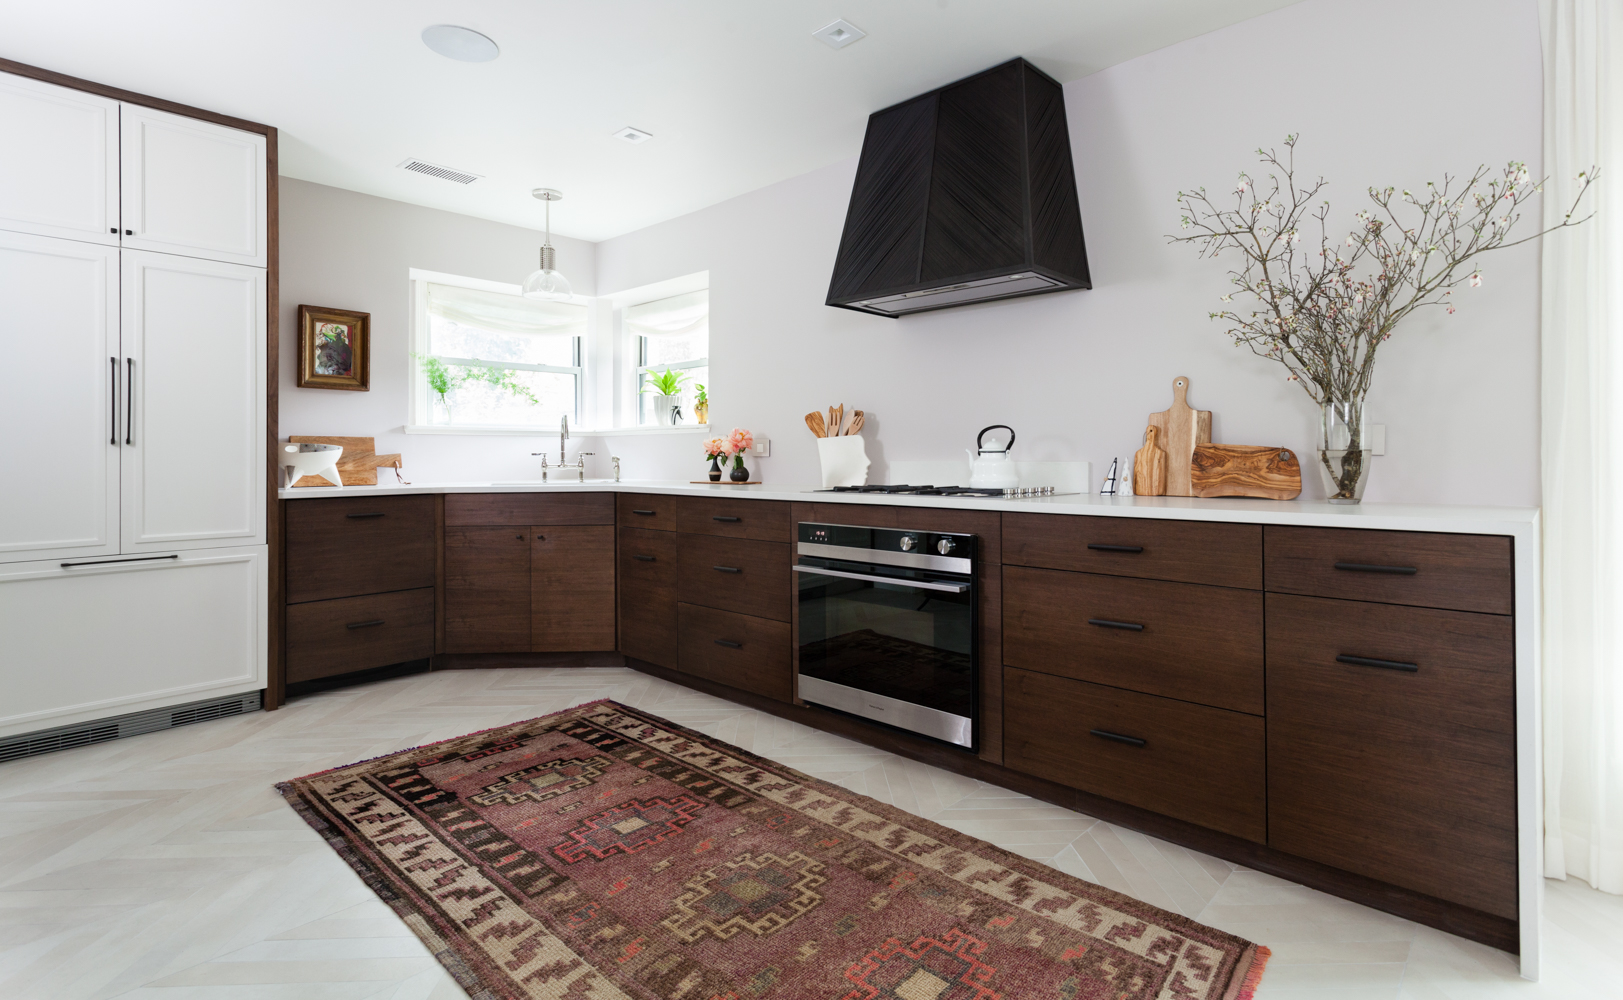 Fisher and Paykel integrated appliances chevron floors and antique turkish rug